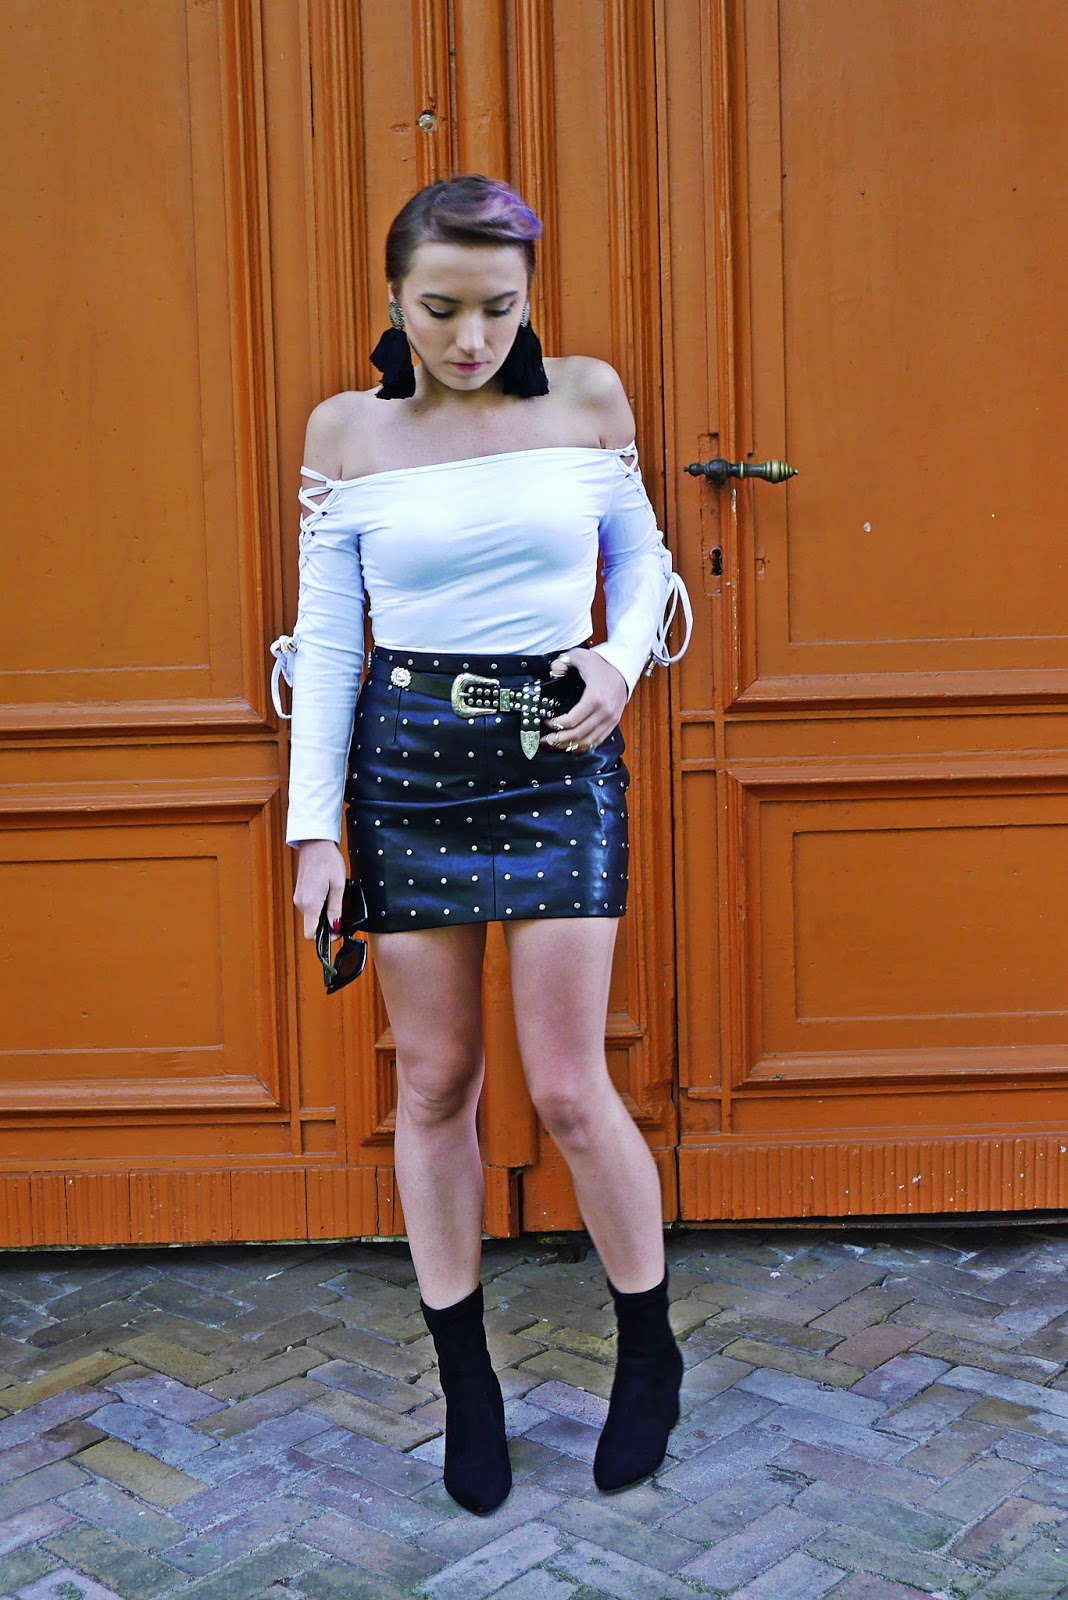 4_flower_sunglass_leather_skirt_socks_shoes_belt_white_top_karyn_blog_modowy_110917afgh